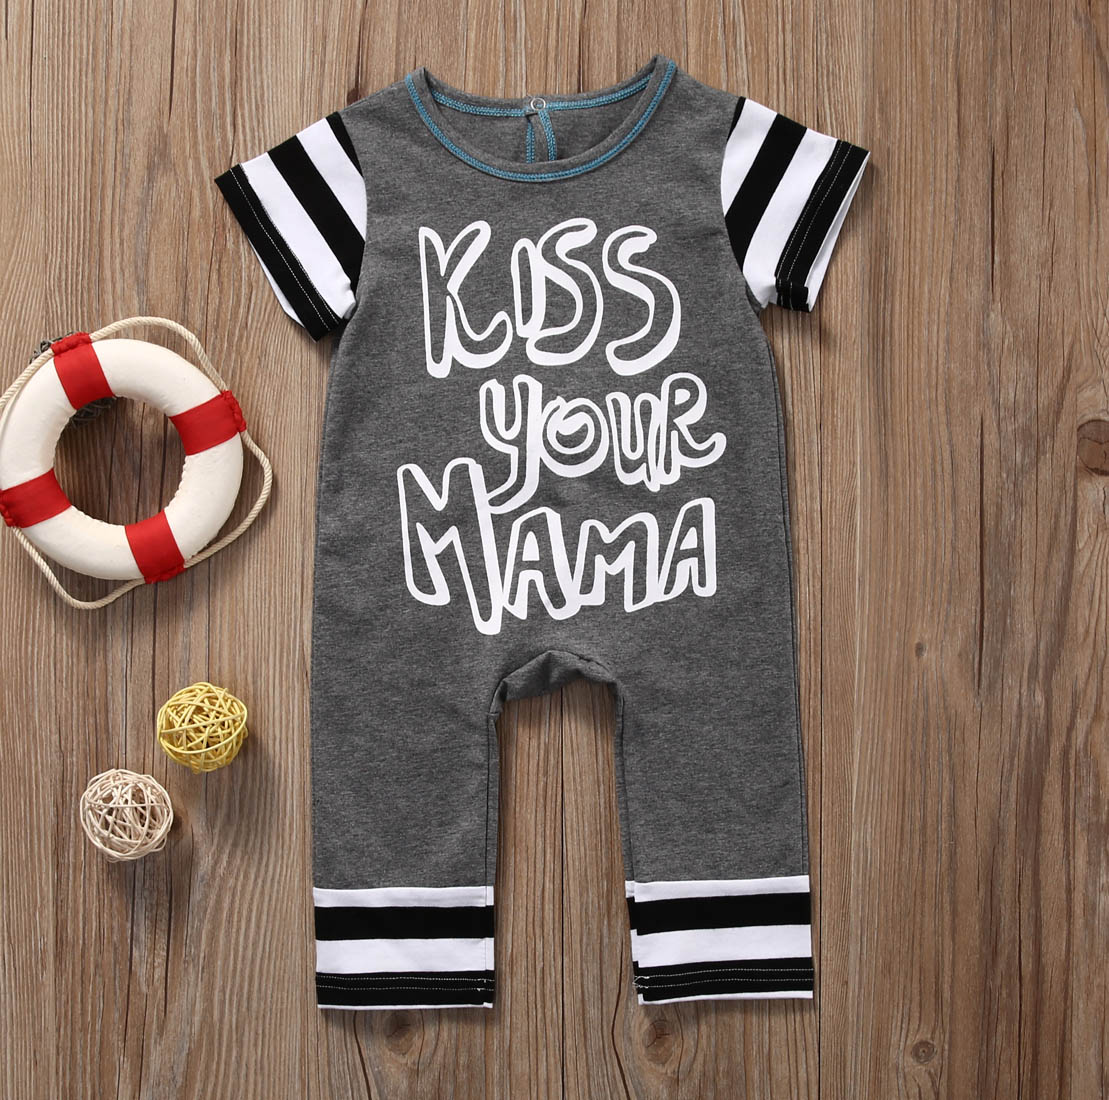 c8e8867ffb70 Cute Newborn Infant Baby Boy Girl Kiss Your Mama Short Sleeve Romper  Jumpsuit Cotton Clothes Outfit -in Rompers from Mother   Kids on  Aliexpress.com ...